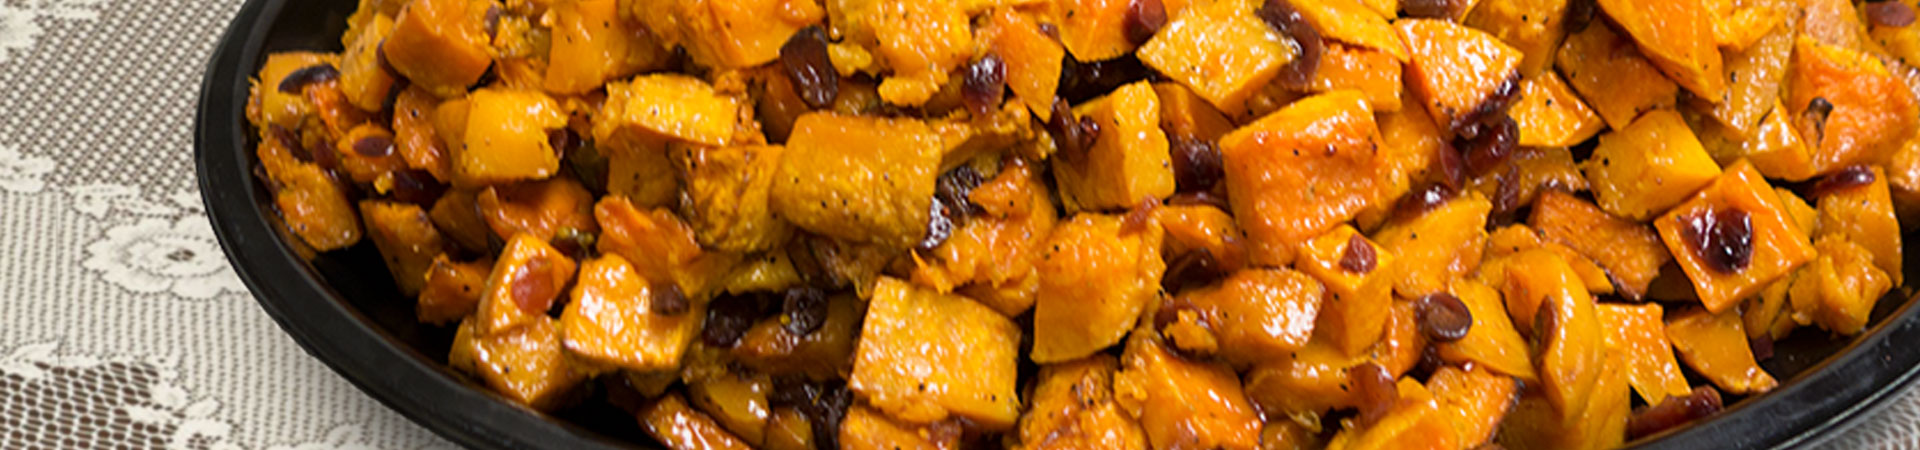 Local, Organic, Roasted Butternut Squash